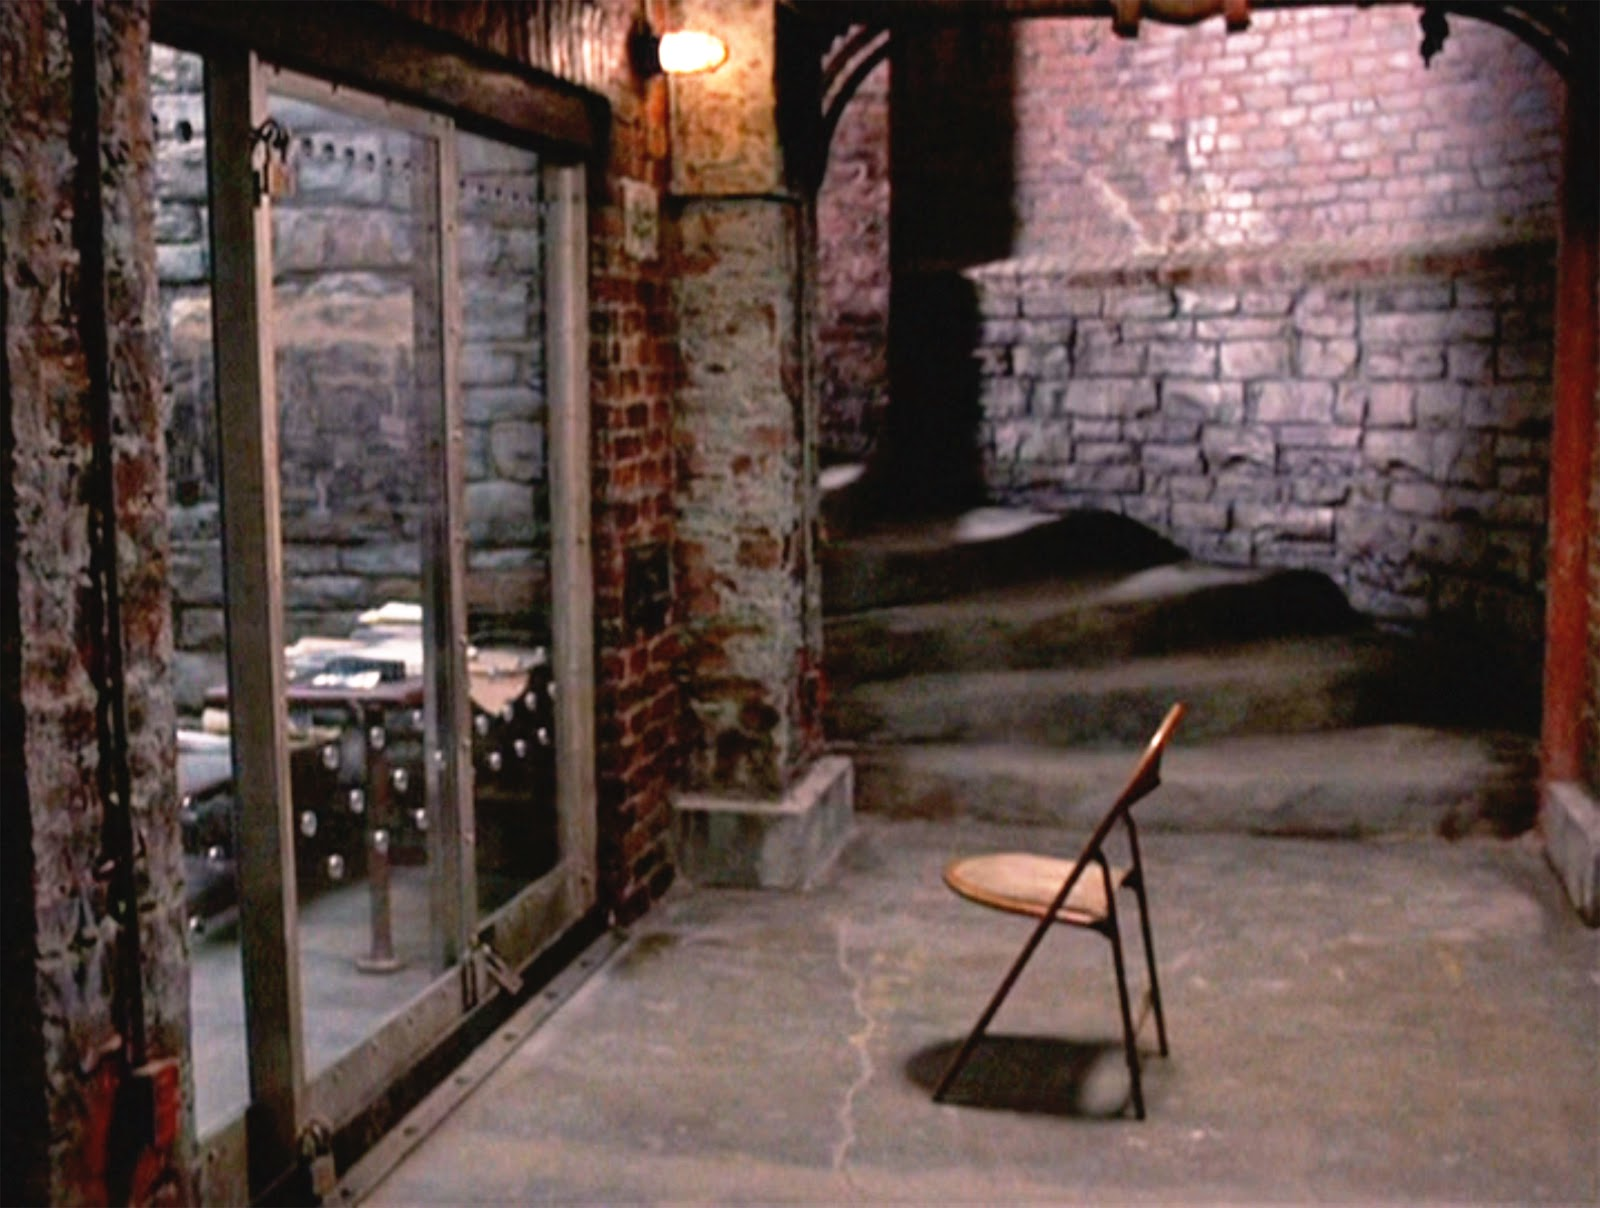 silence of the lambs essay college essays college application  please explain this line from silence of the lambs movies purposeful symbolic foreshadowing that lecter s